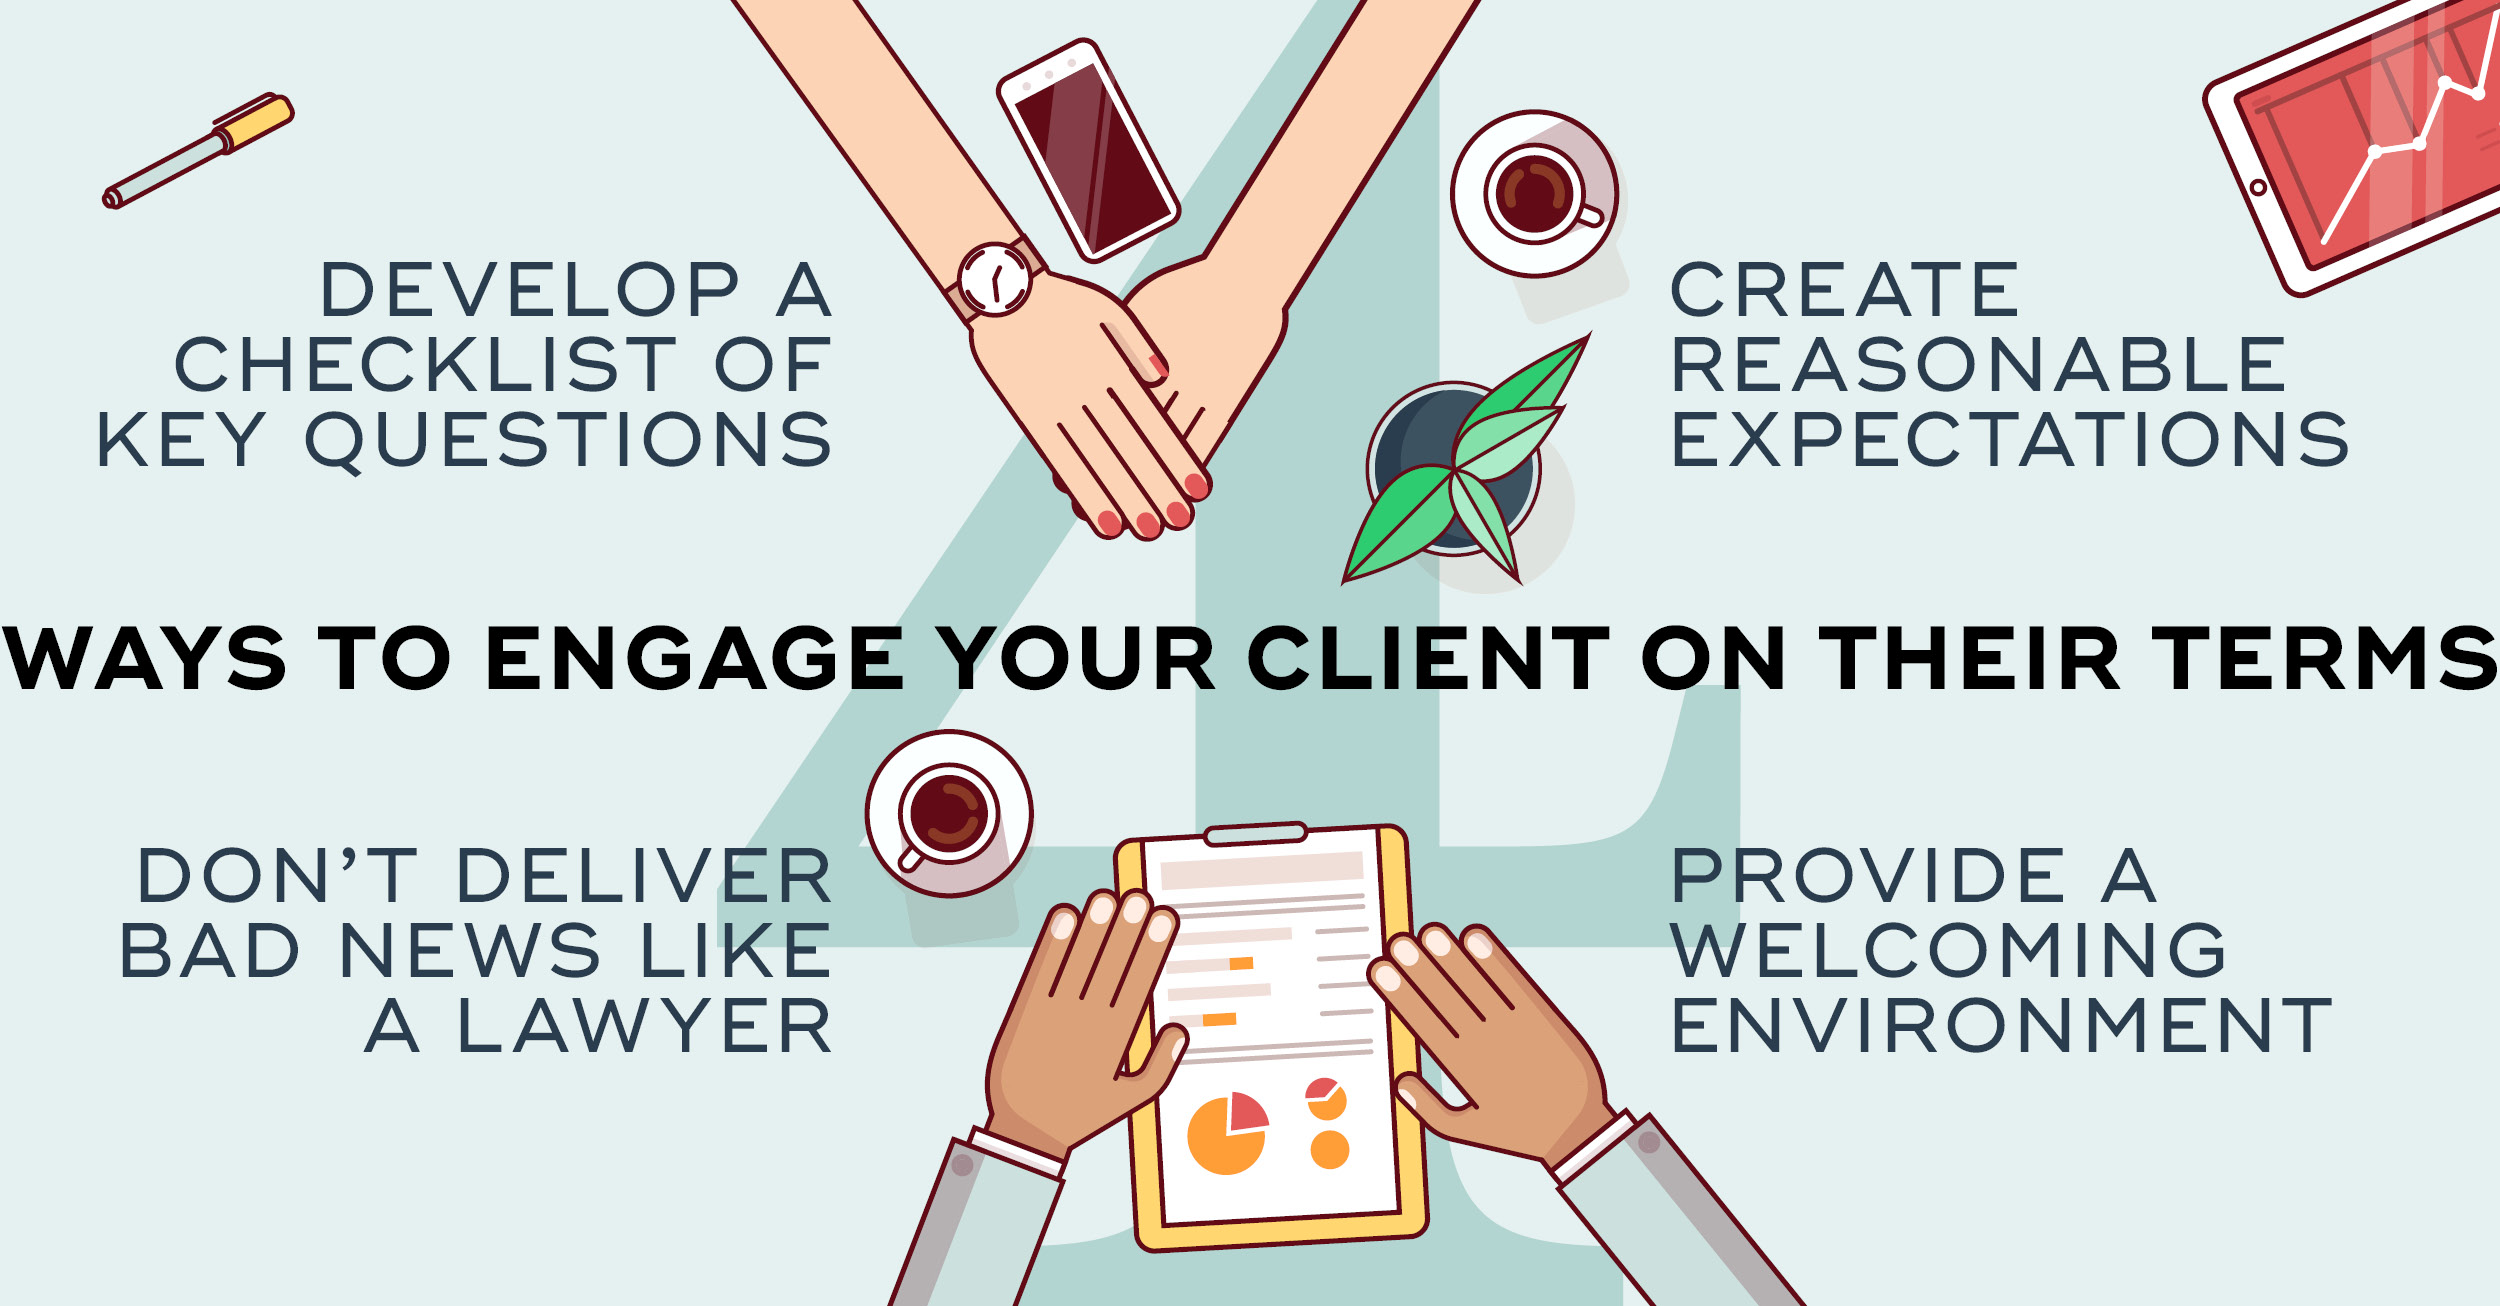 Engaging your client